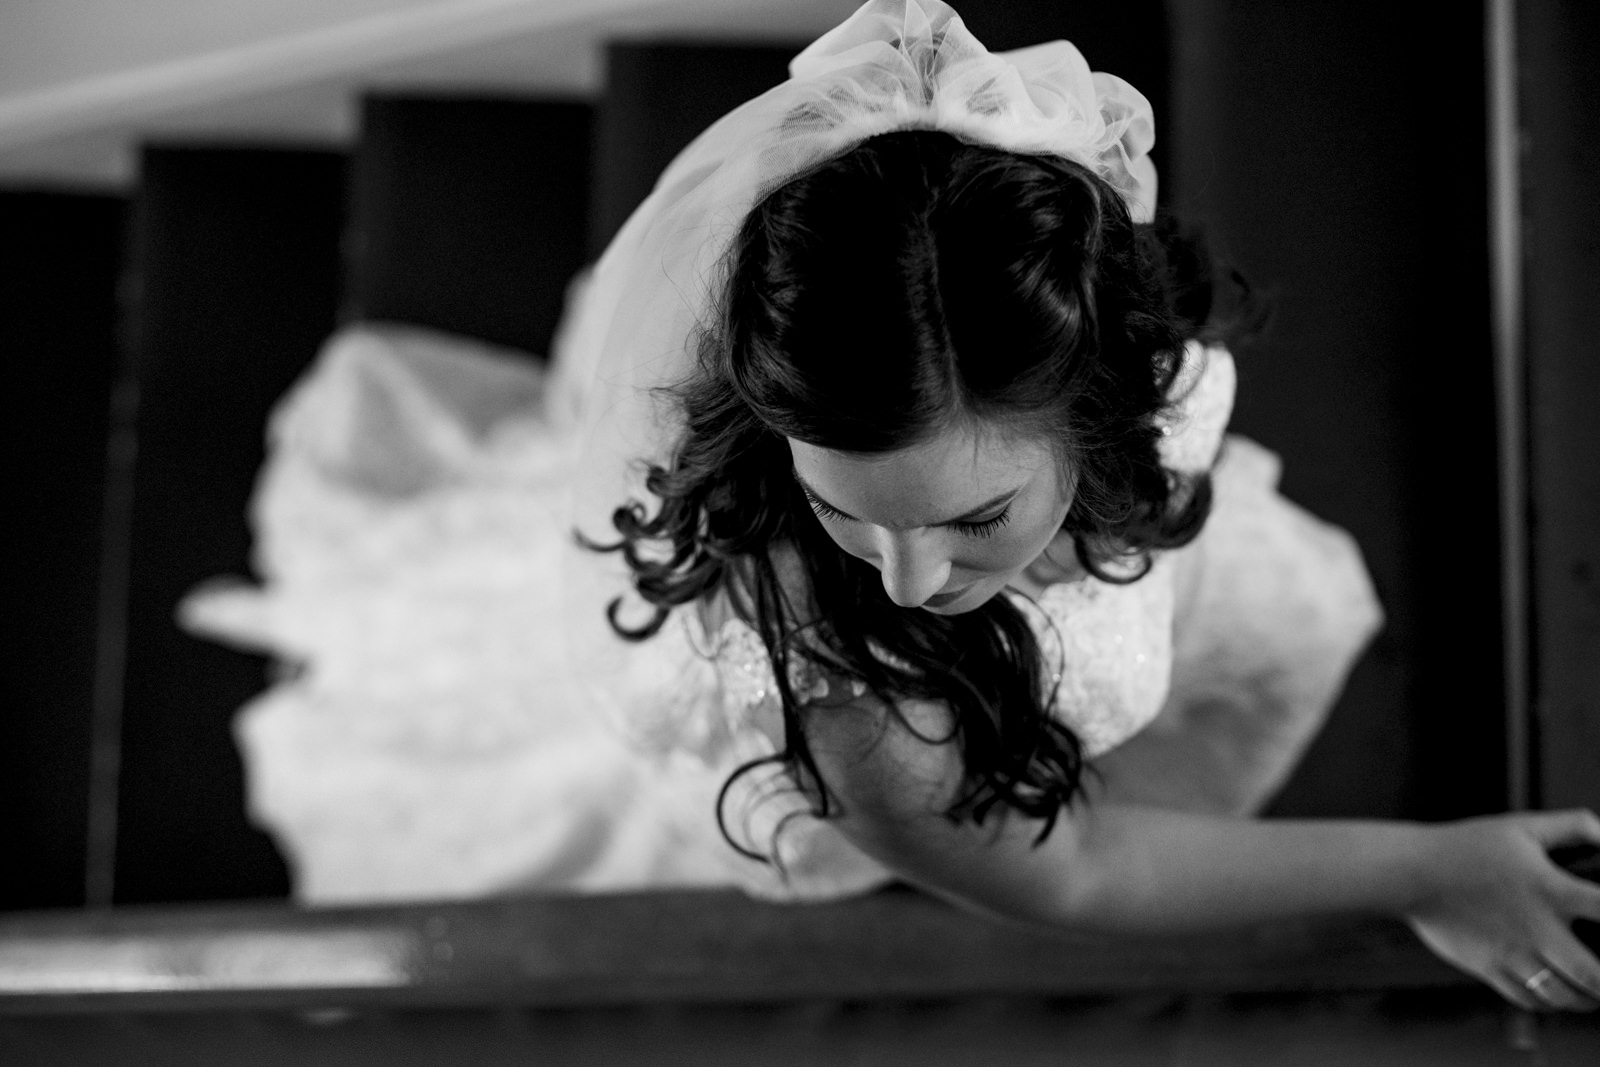 The bride climbs the stairs in her beautiful wedding dress.